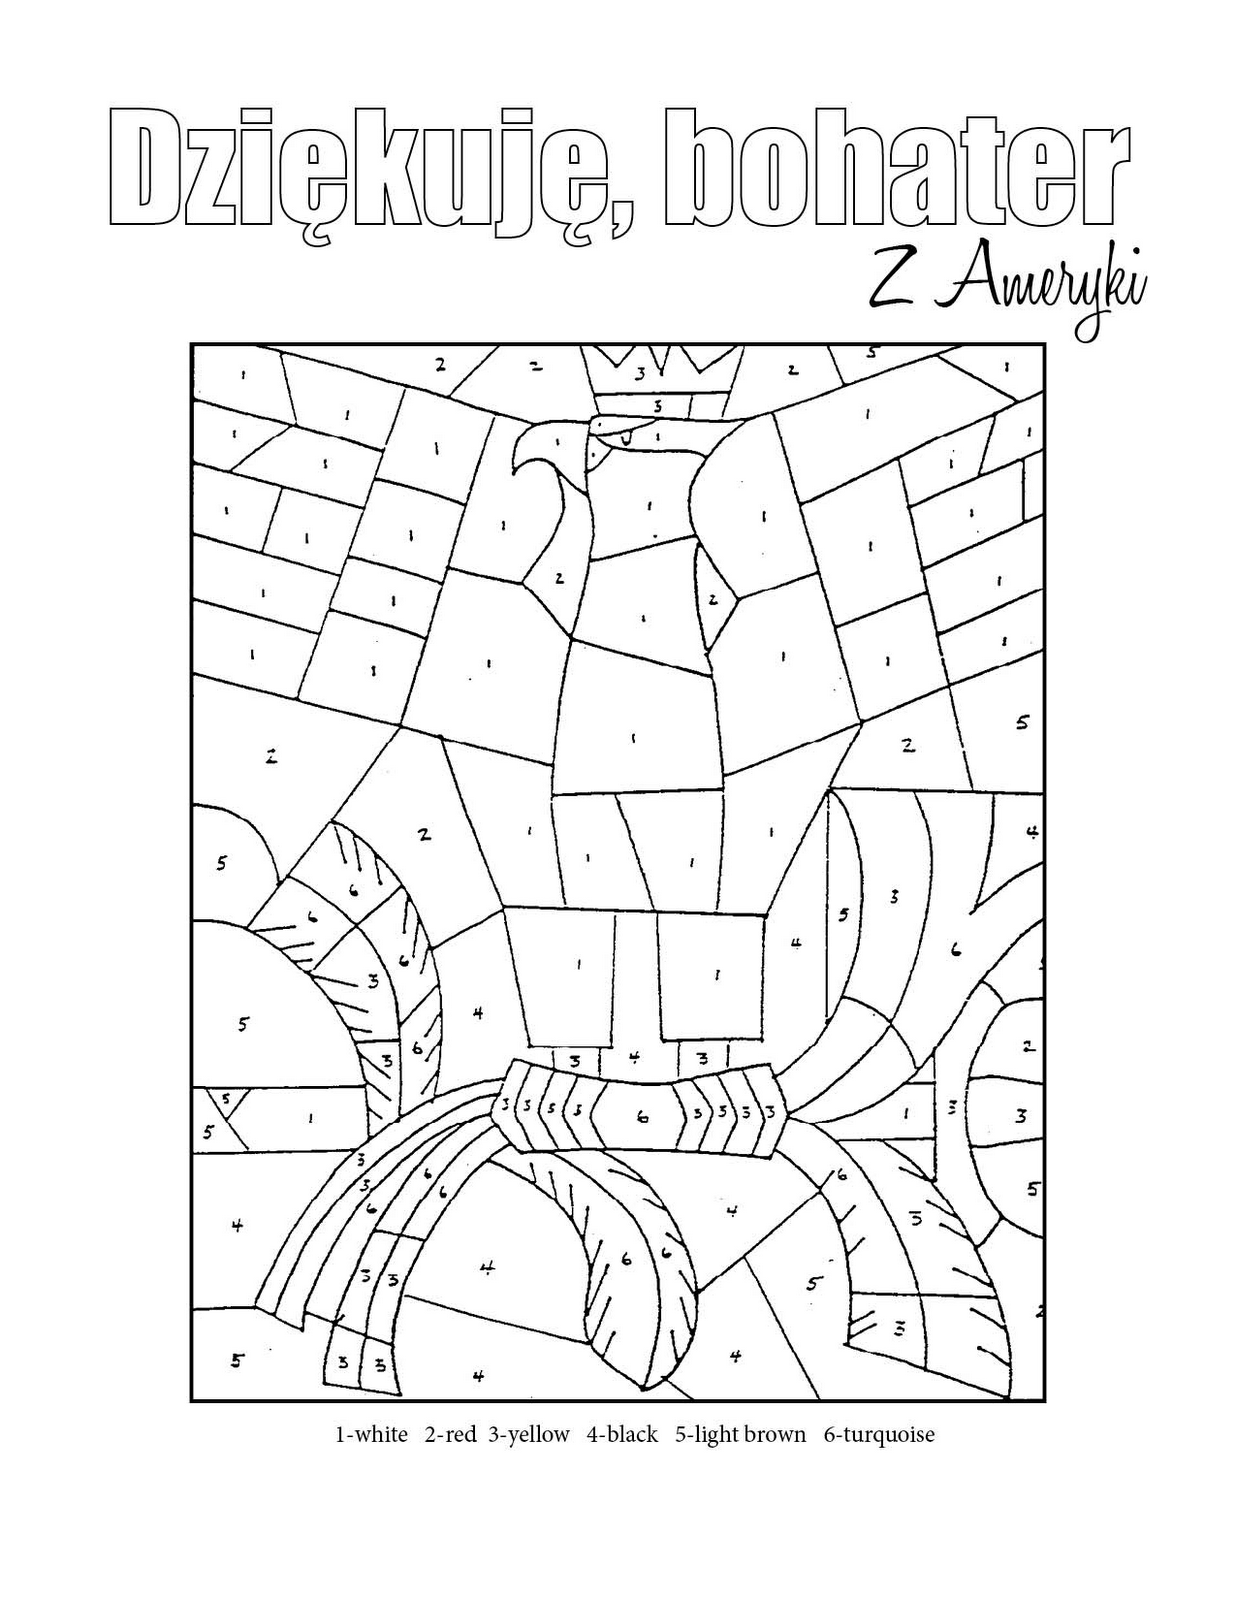 polish coloring pages | Request for a Polish general! | Sandy Allnock